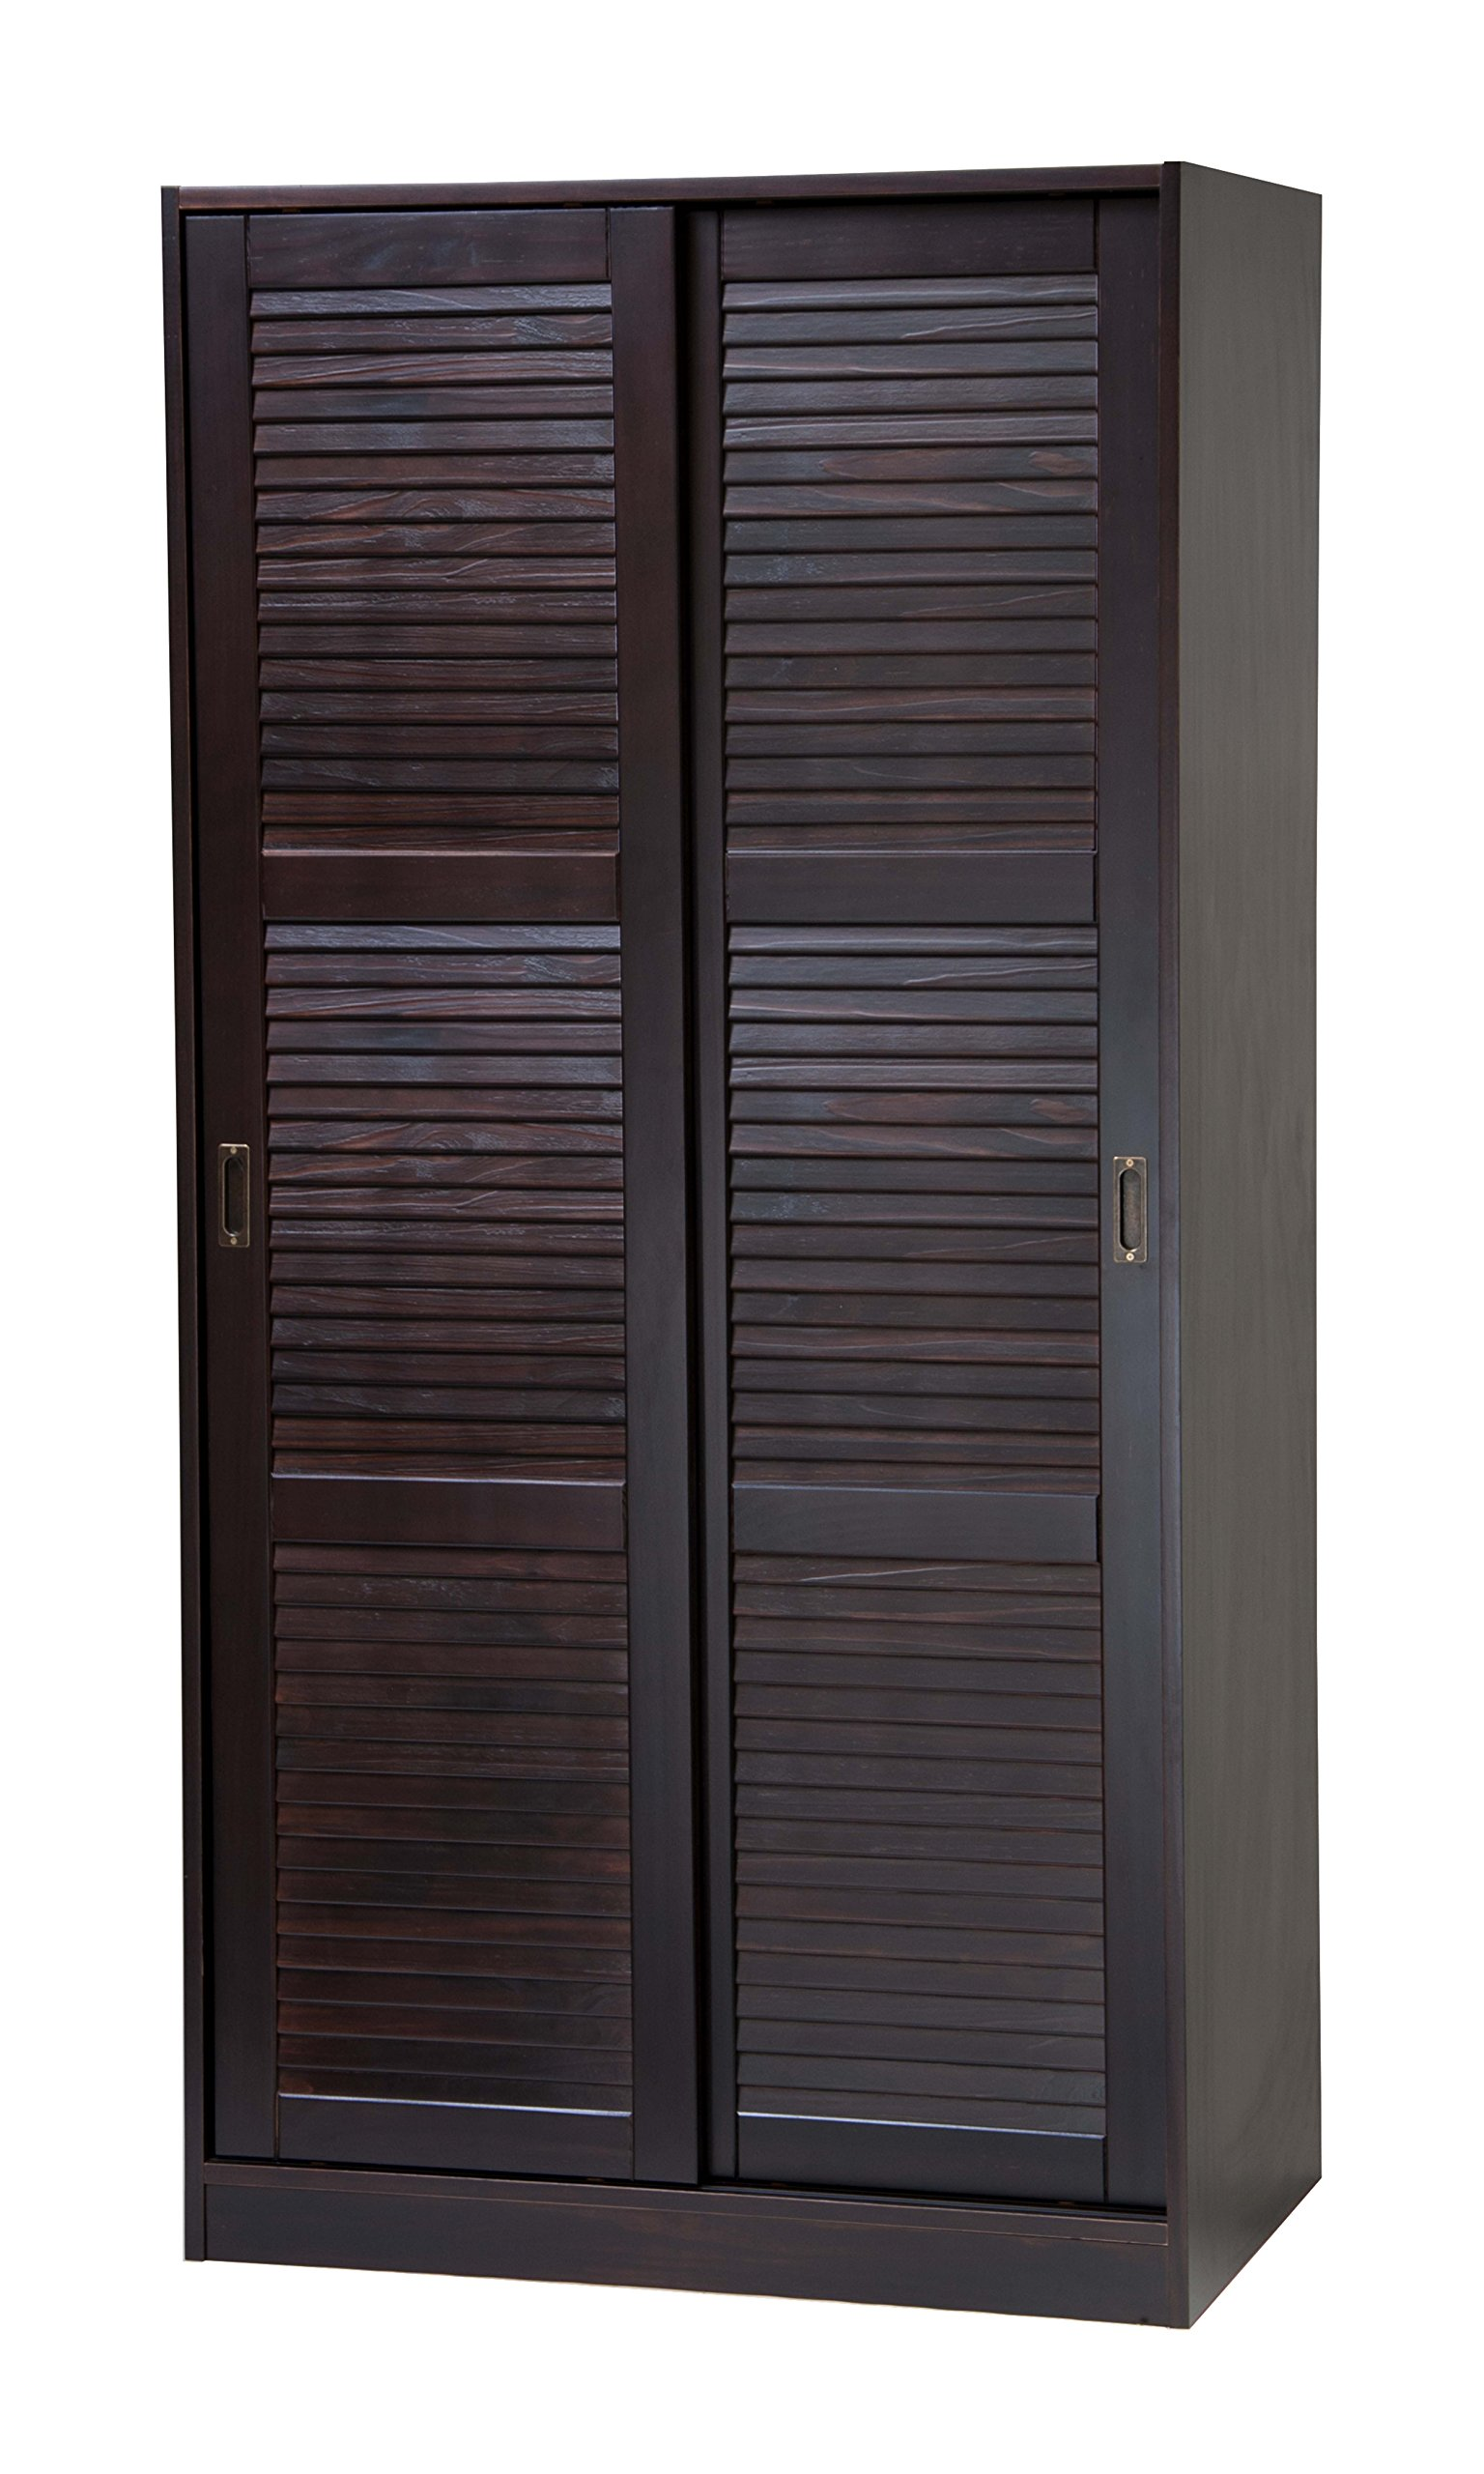 100% Solid Wood 2-Sliding Door Wardrobe/Armoire/Closet/Mudroom Storage by Palace Imports, Java Color. 1 Large Shelf, 1 Clothing Rod Included. Extra Optional Shelves Sold Separately. Requires Assembly